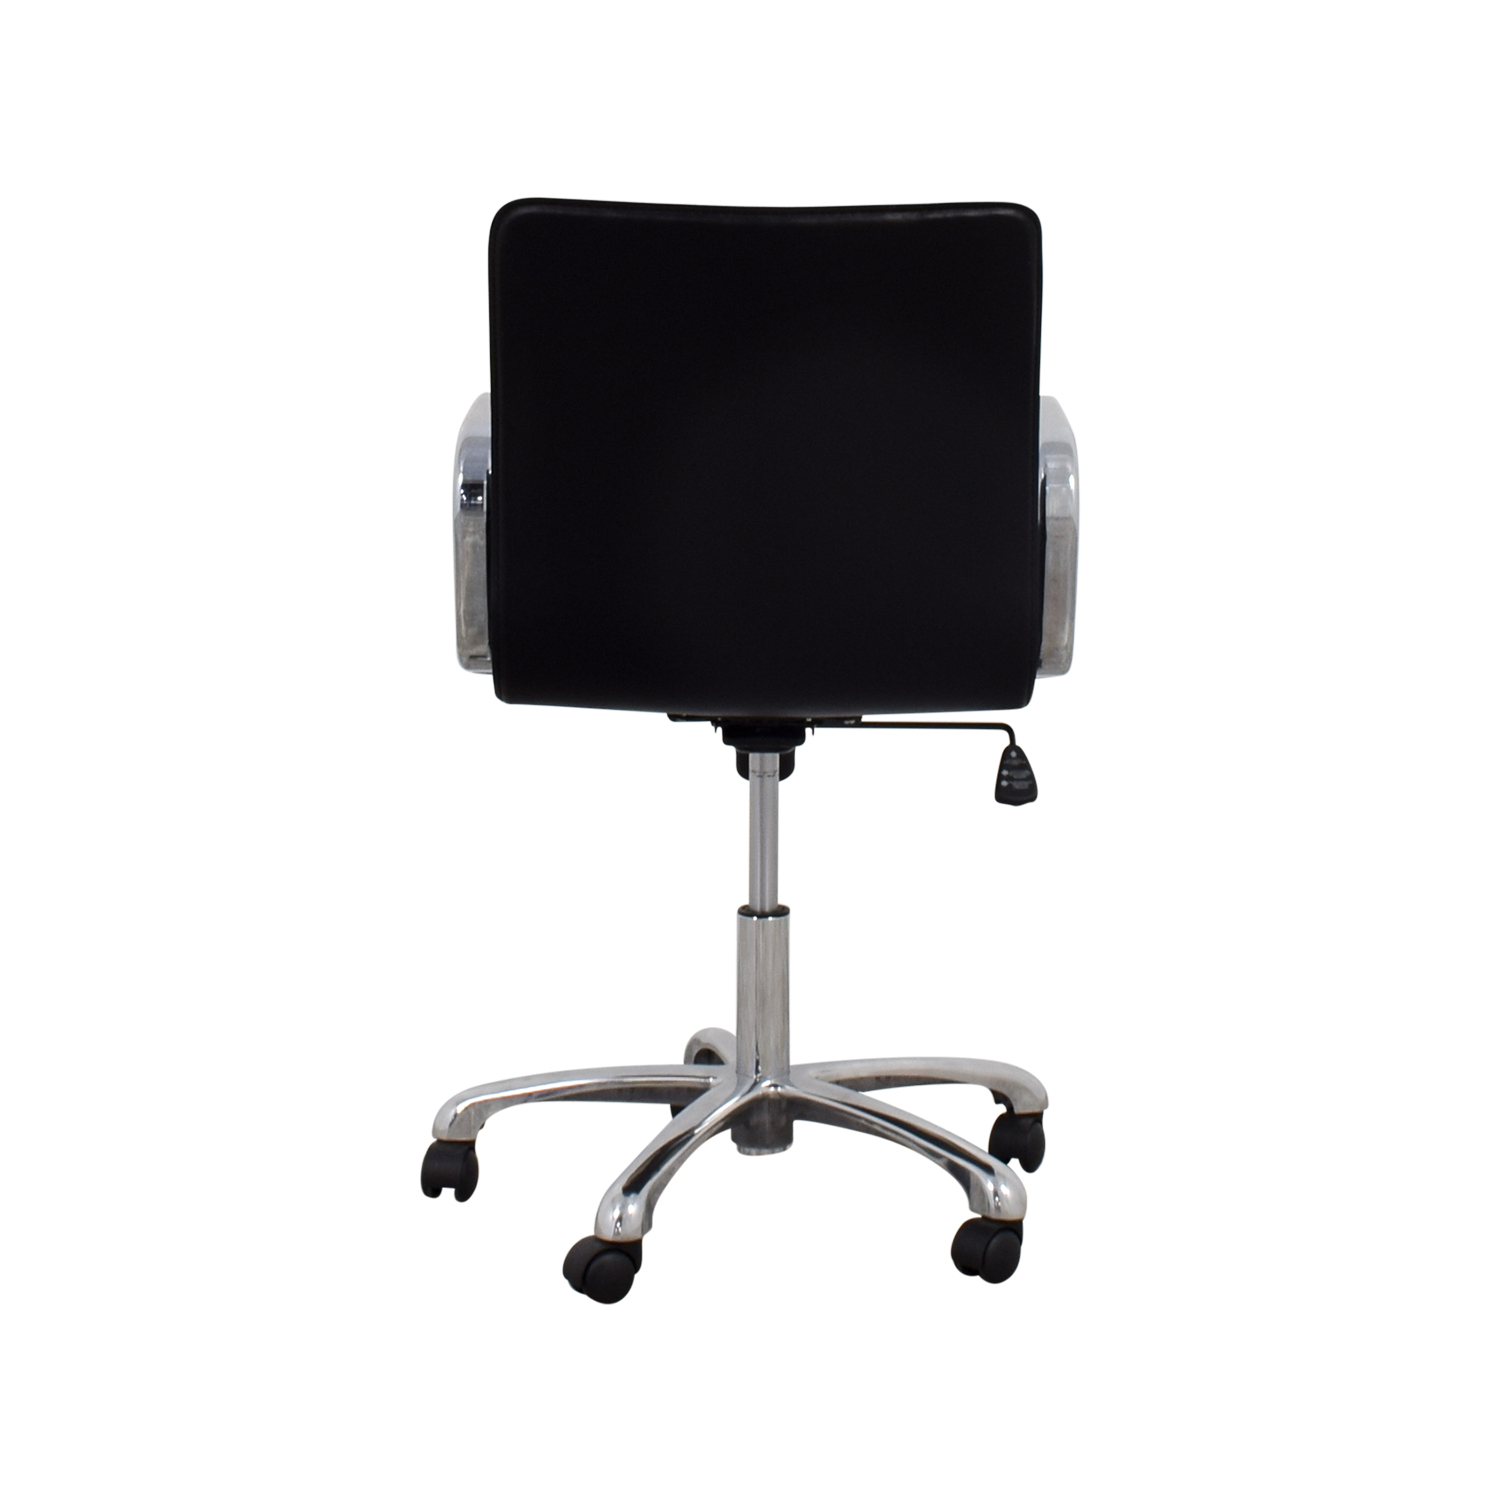 Crate & Barrel Crate & Barrel Ripple Leather Office Chair black